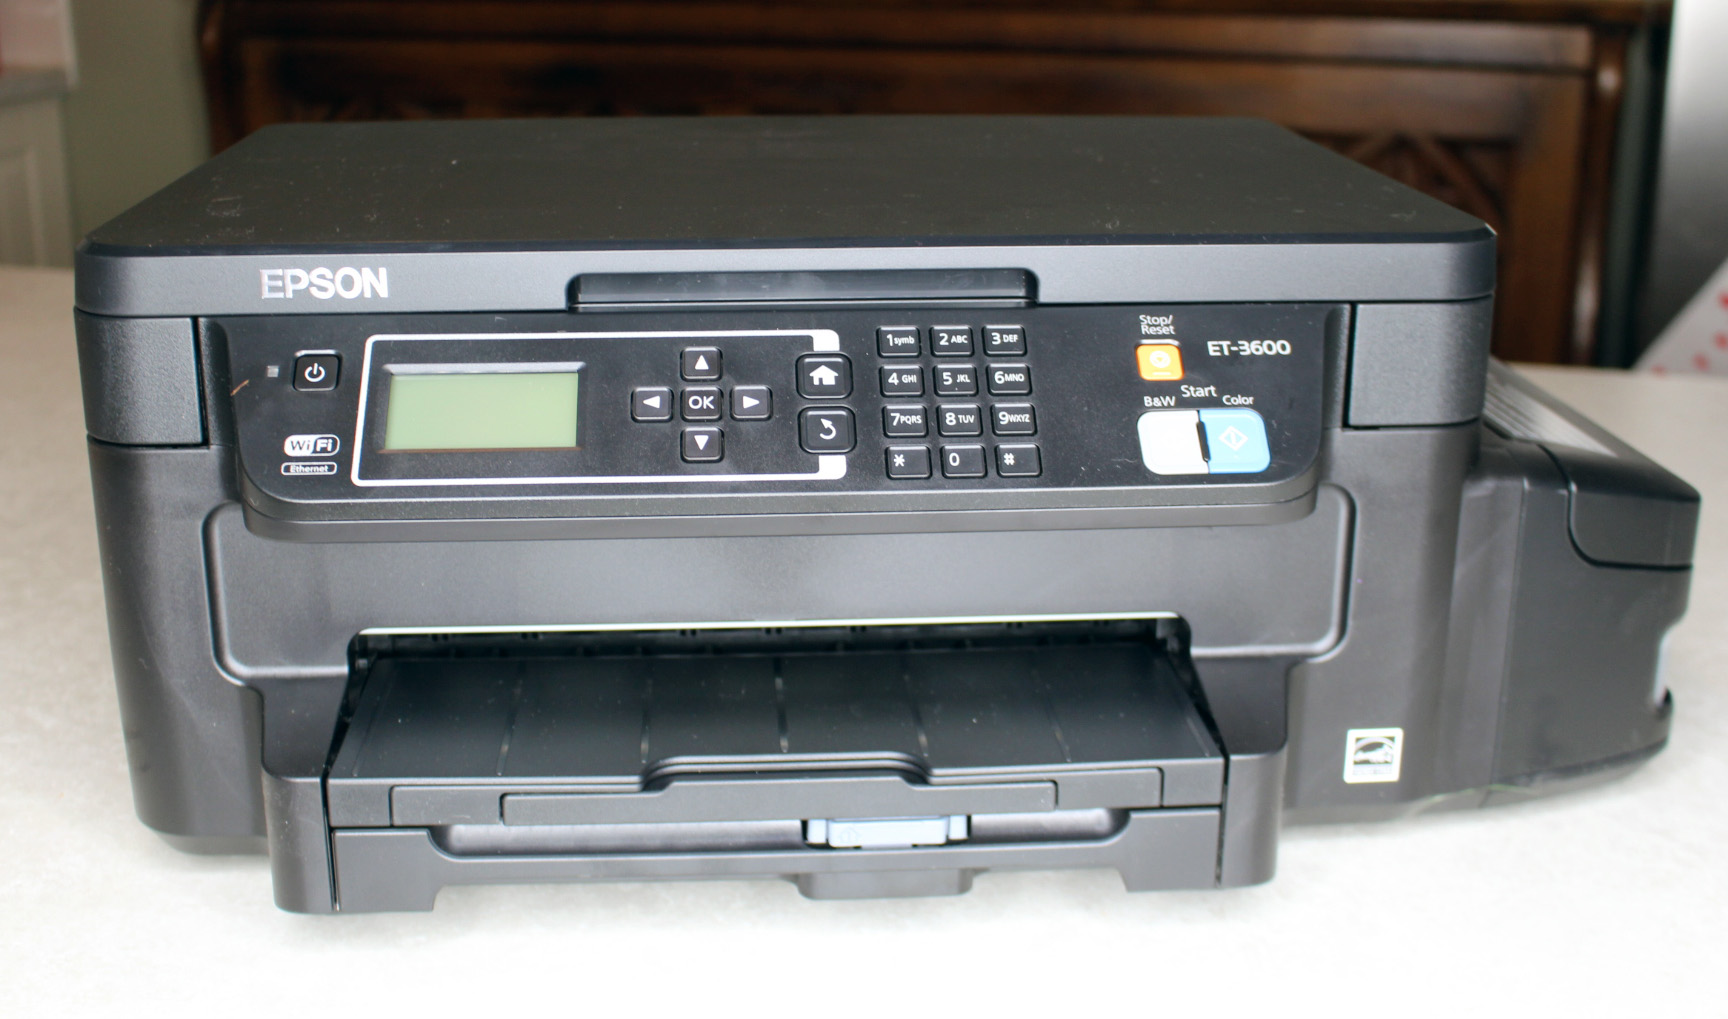 The Epson ET-3600: A family-friendly computer printer - Dad